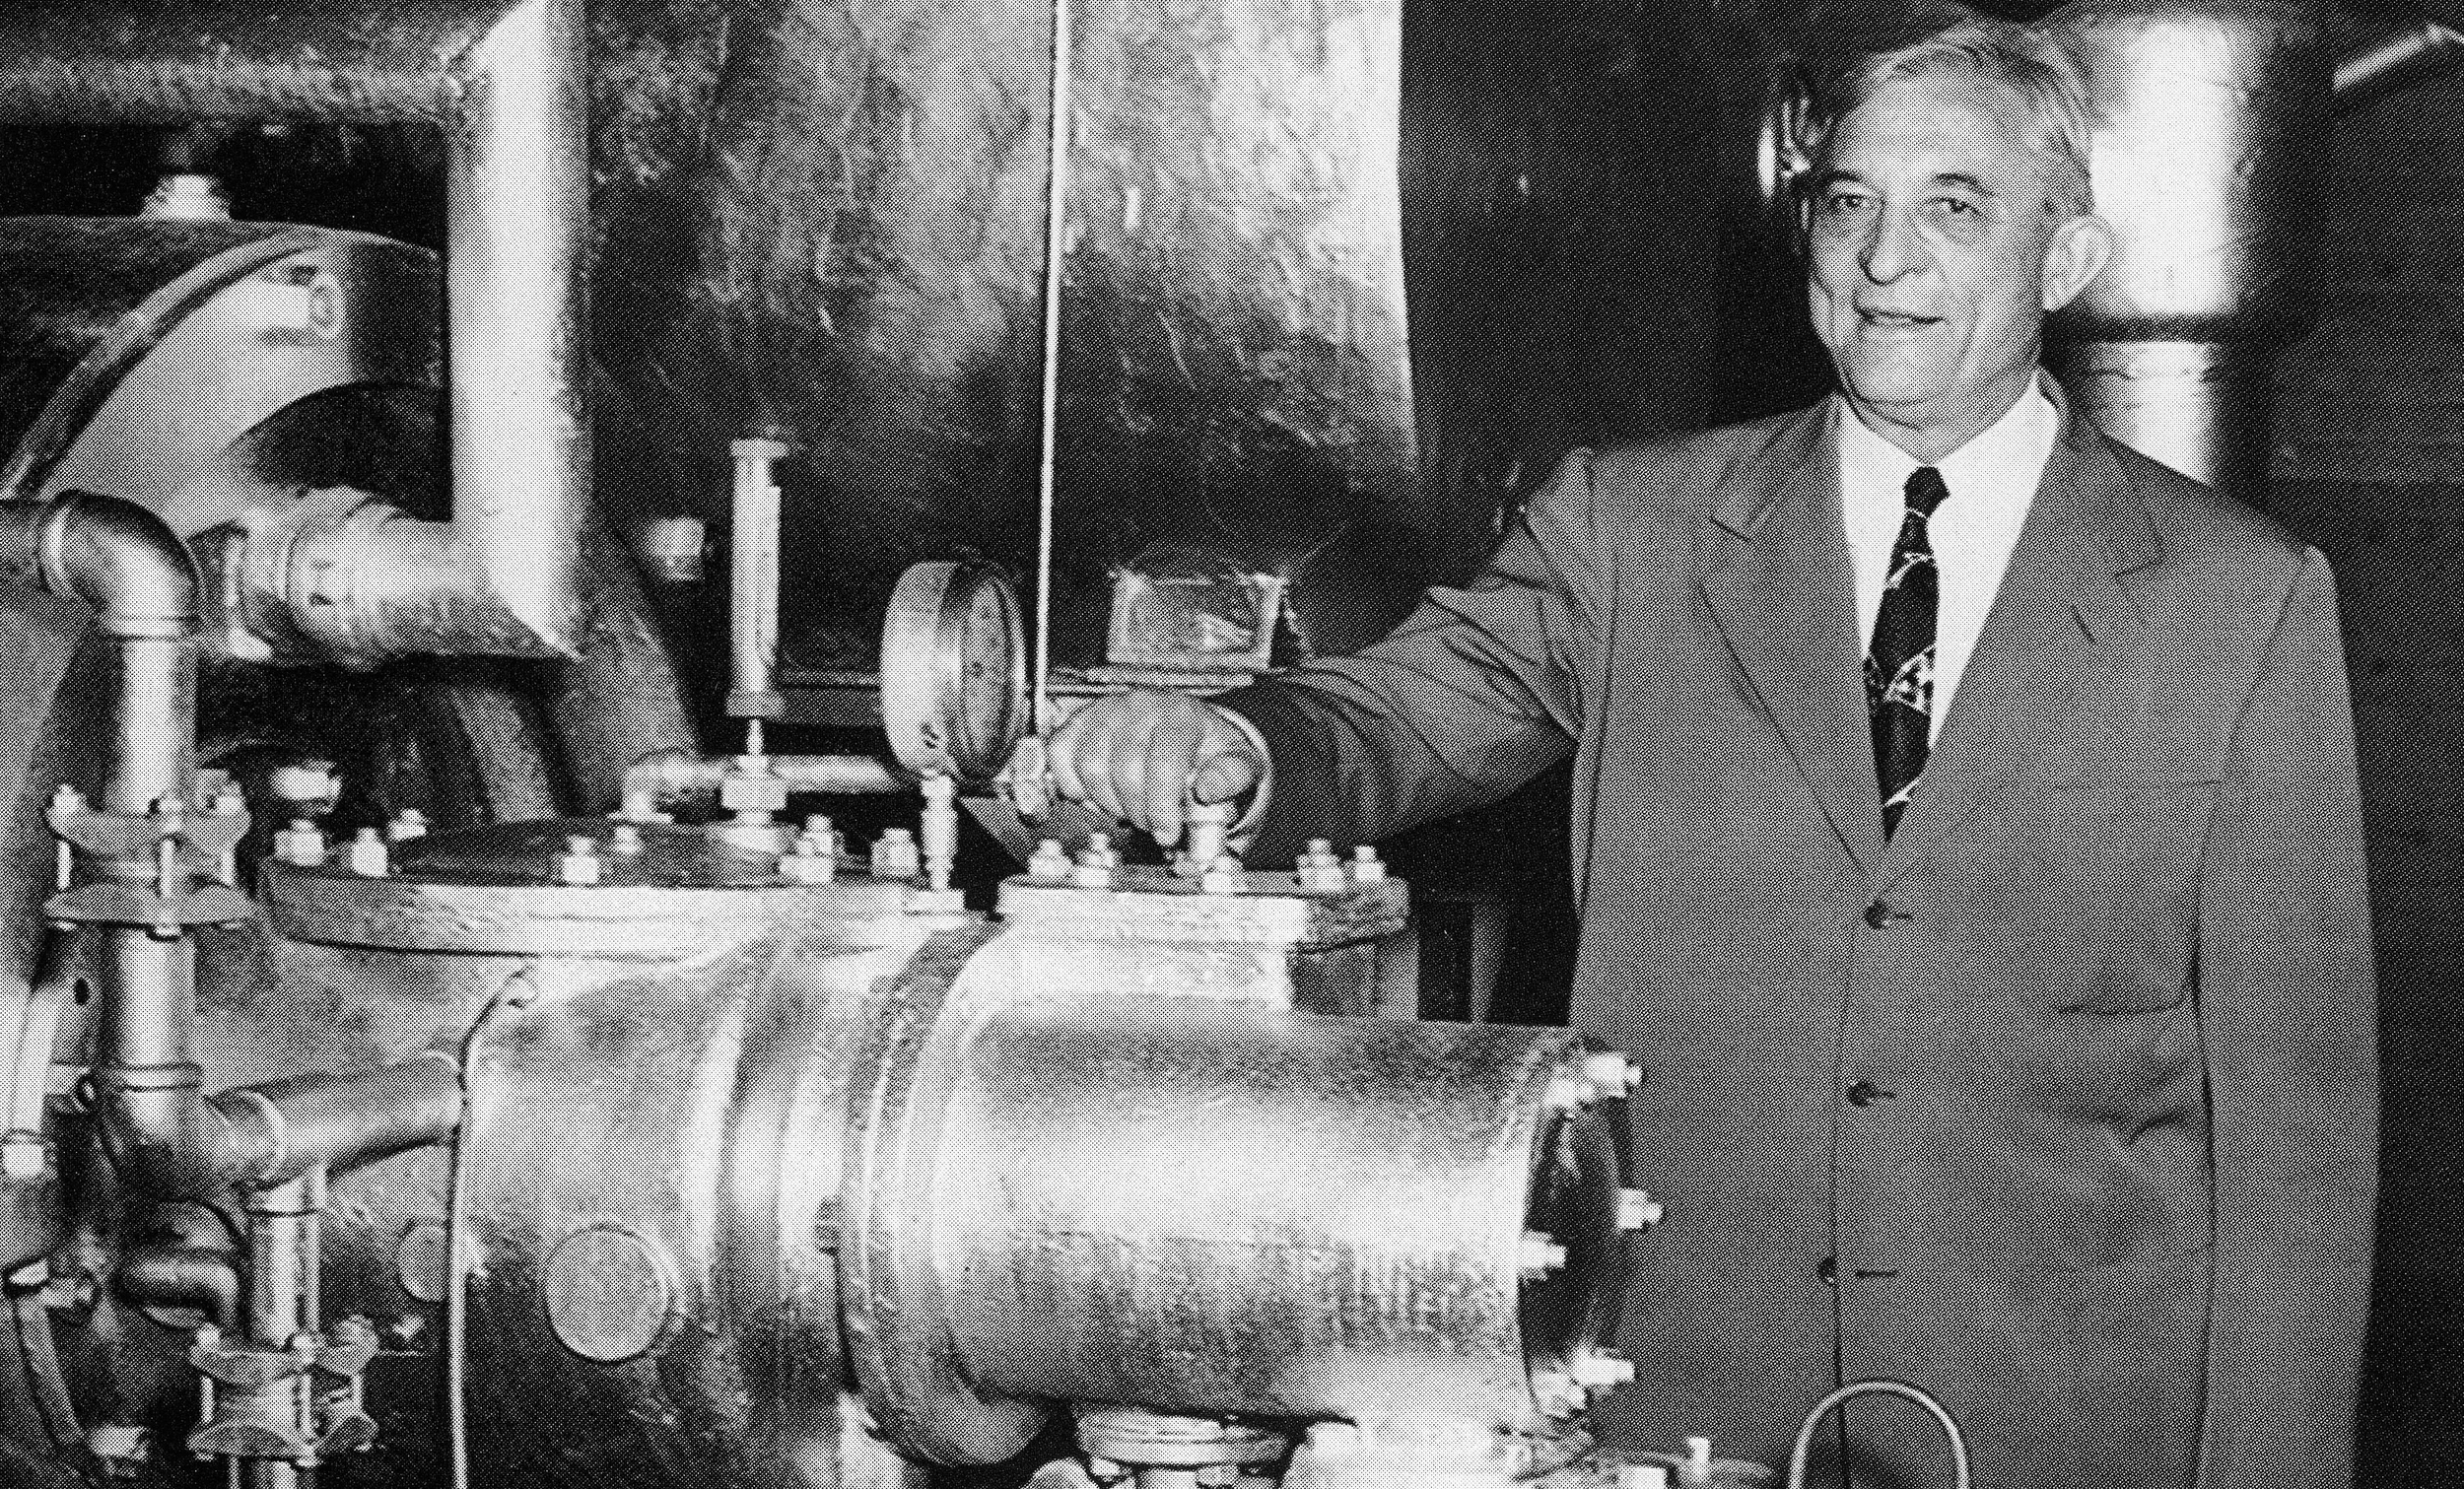 willis carrier brief history The launch of carrier air conditioning company in the opening decades of the 20th century, willis carrier established carrier air conditioning of america as the.